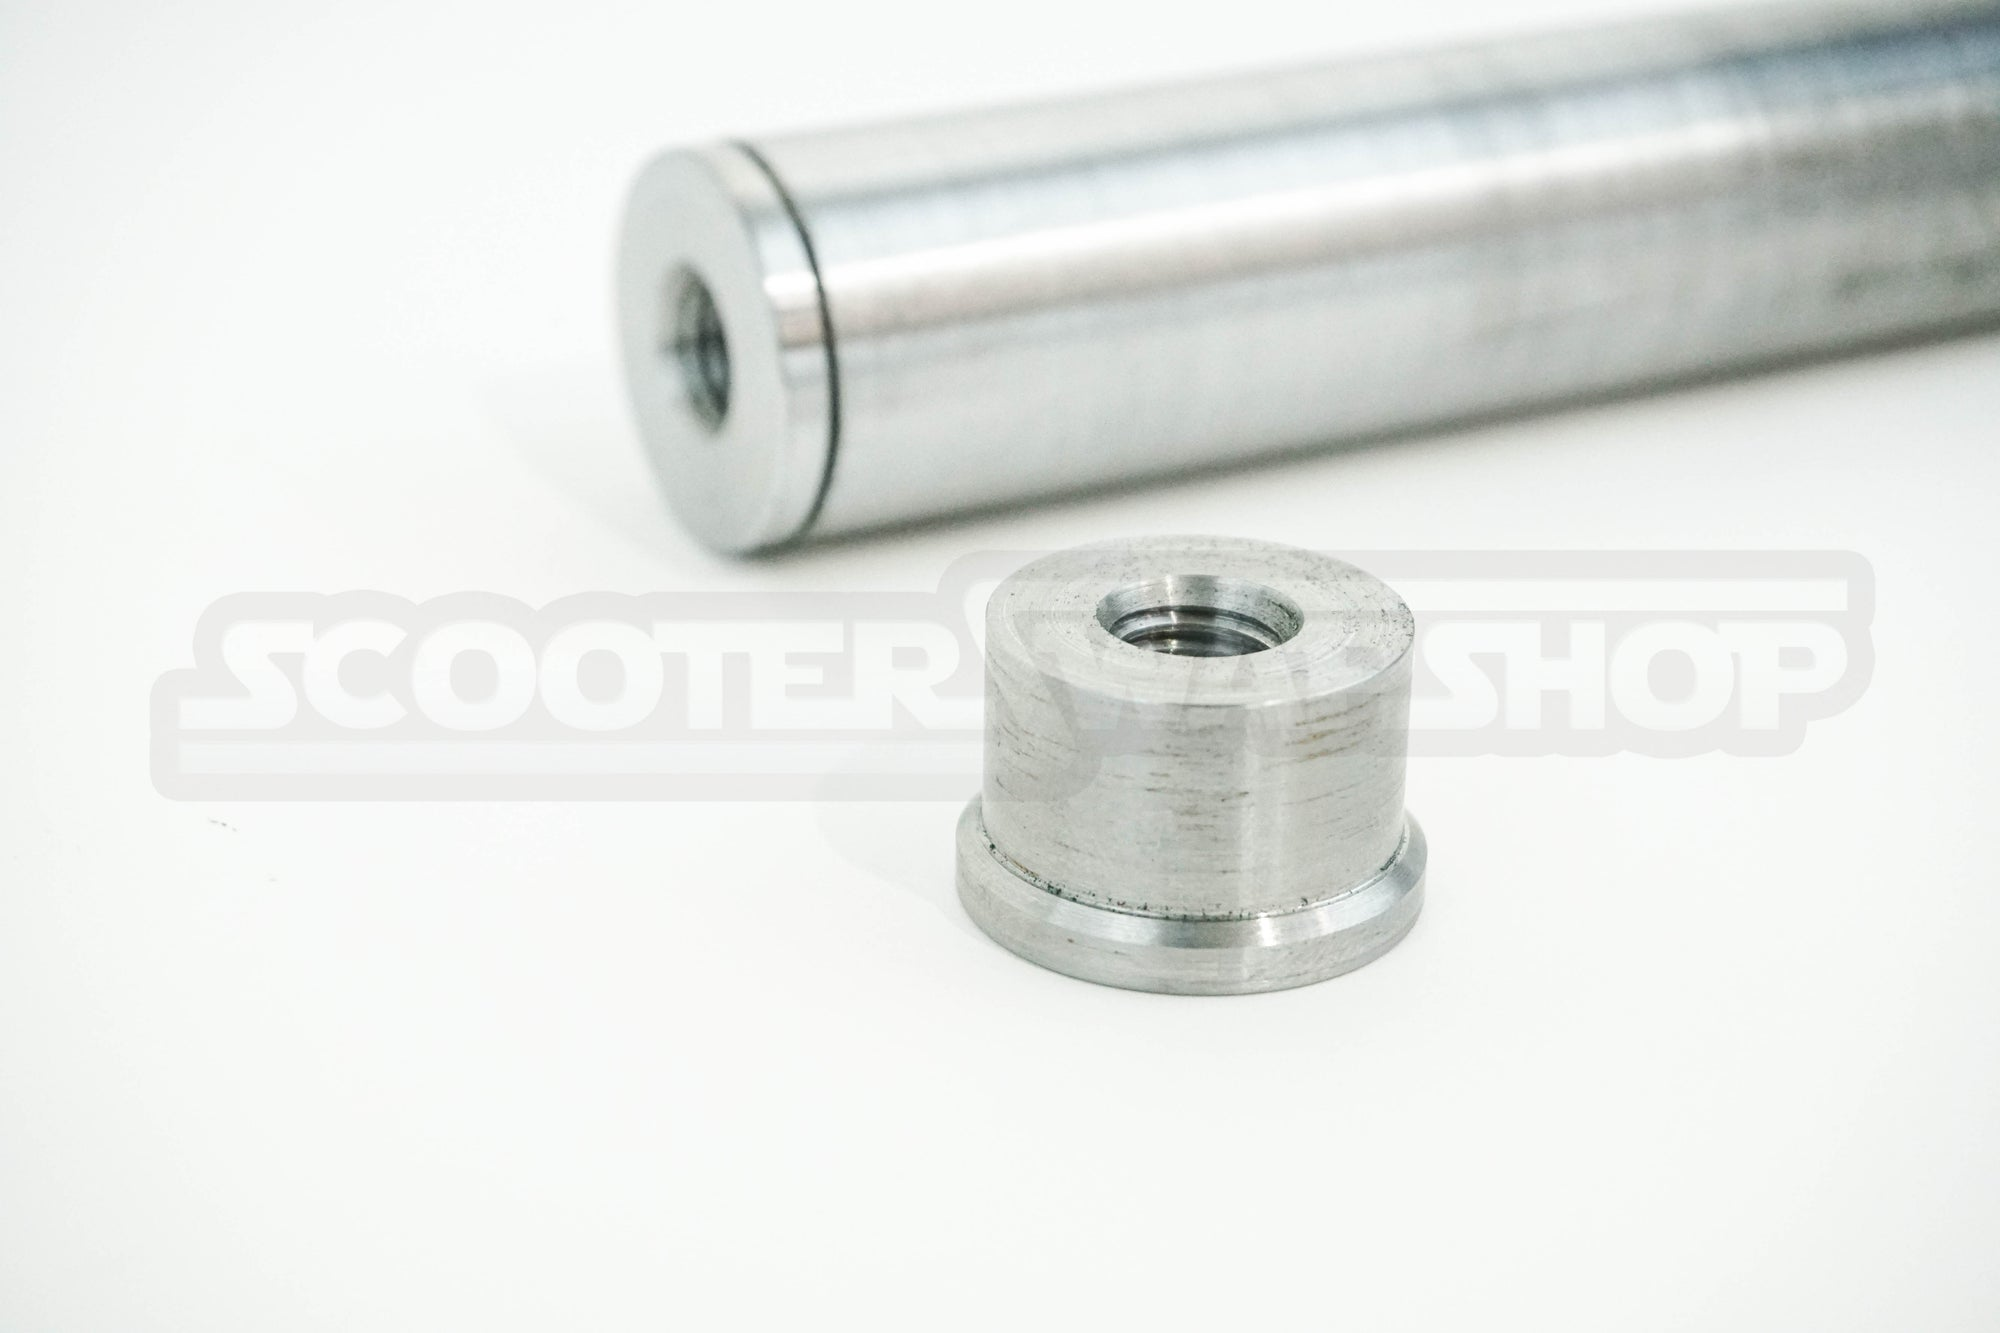 Internally threaded End plug M10 1.5